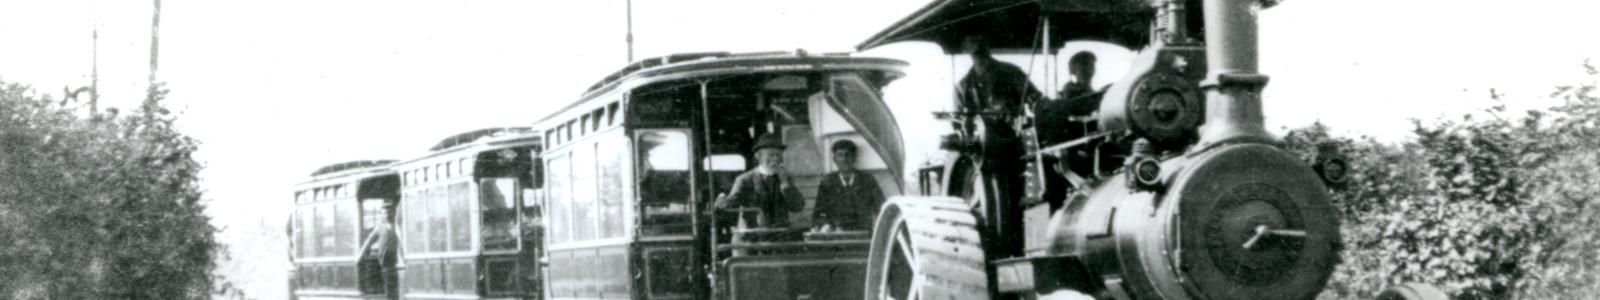 Photograph, black and white, showing Samual Hackett in the back of a steam wagon milkcart with crane, built by Tasker and Co, Waterloo Foundry, Anna Valley, Abbotts Ann, Hampshire